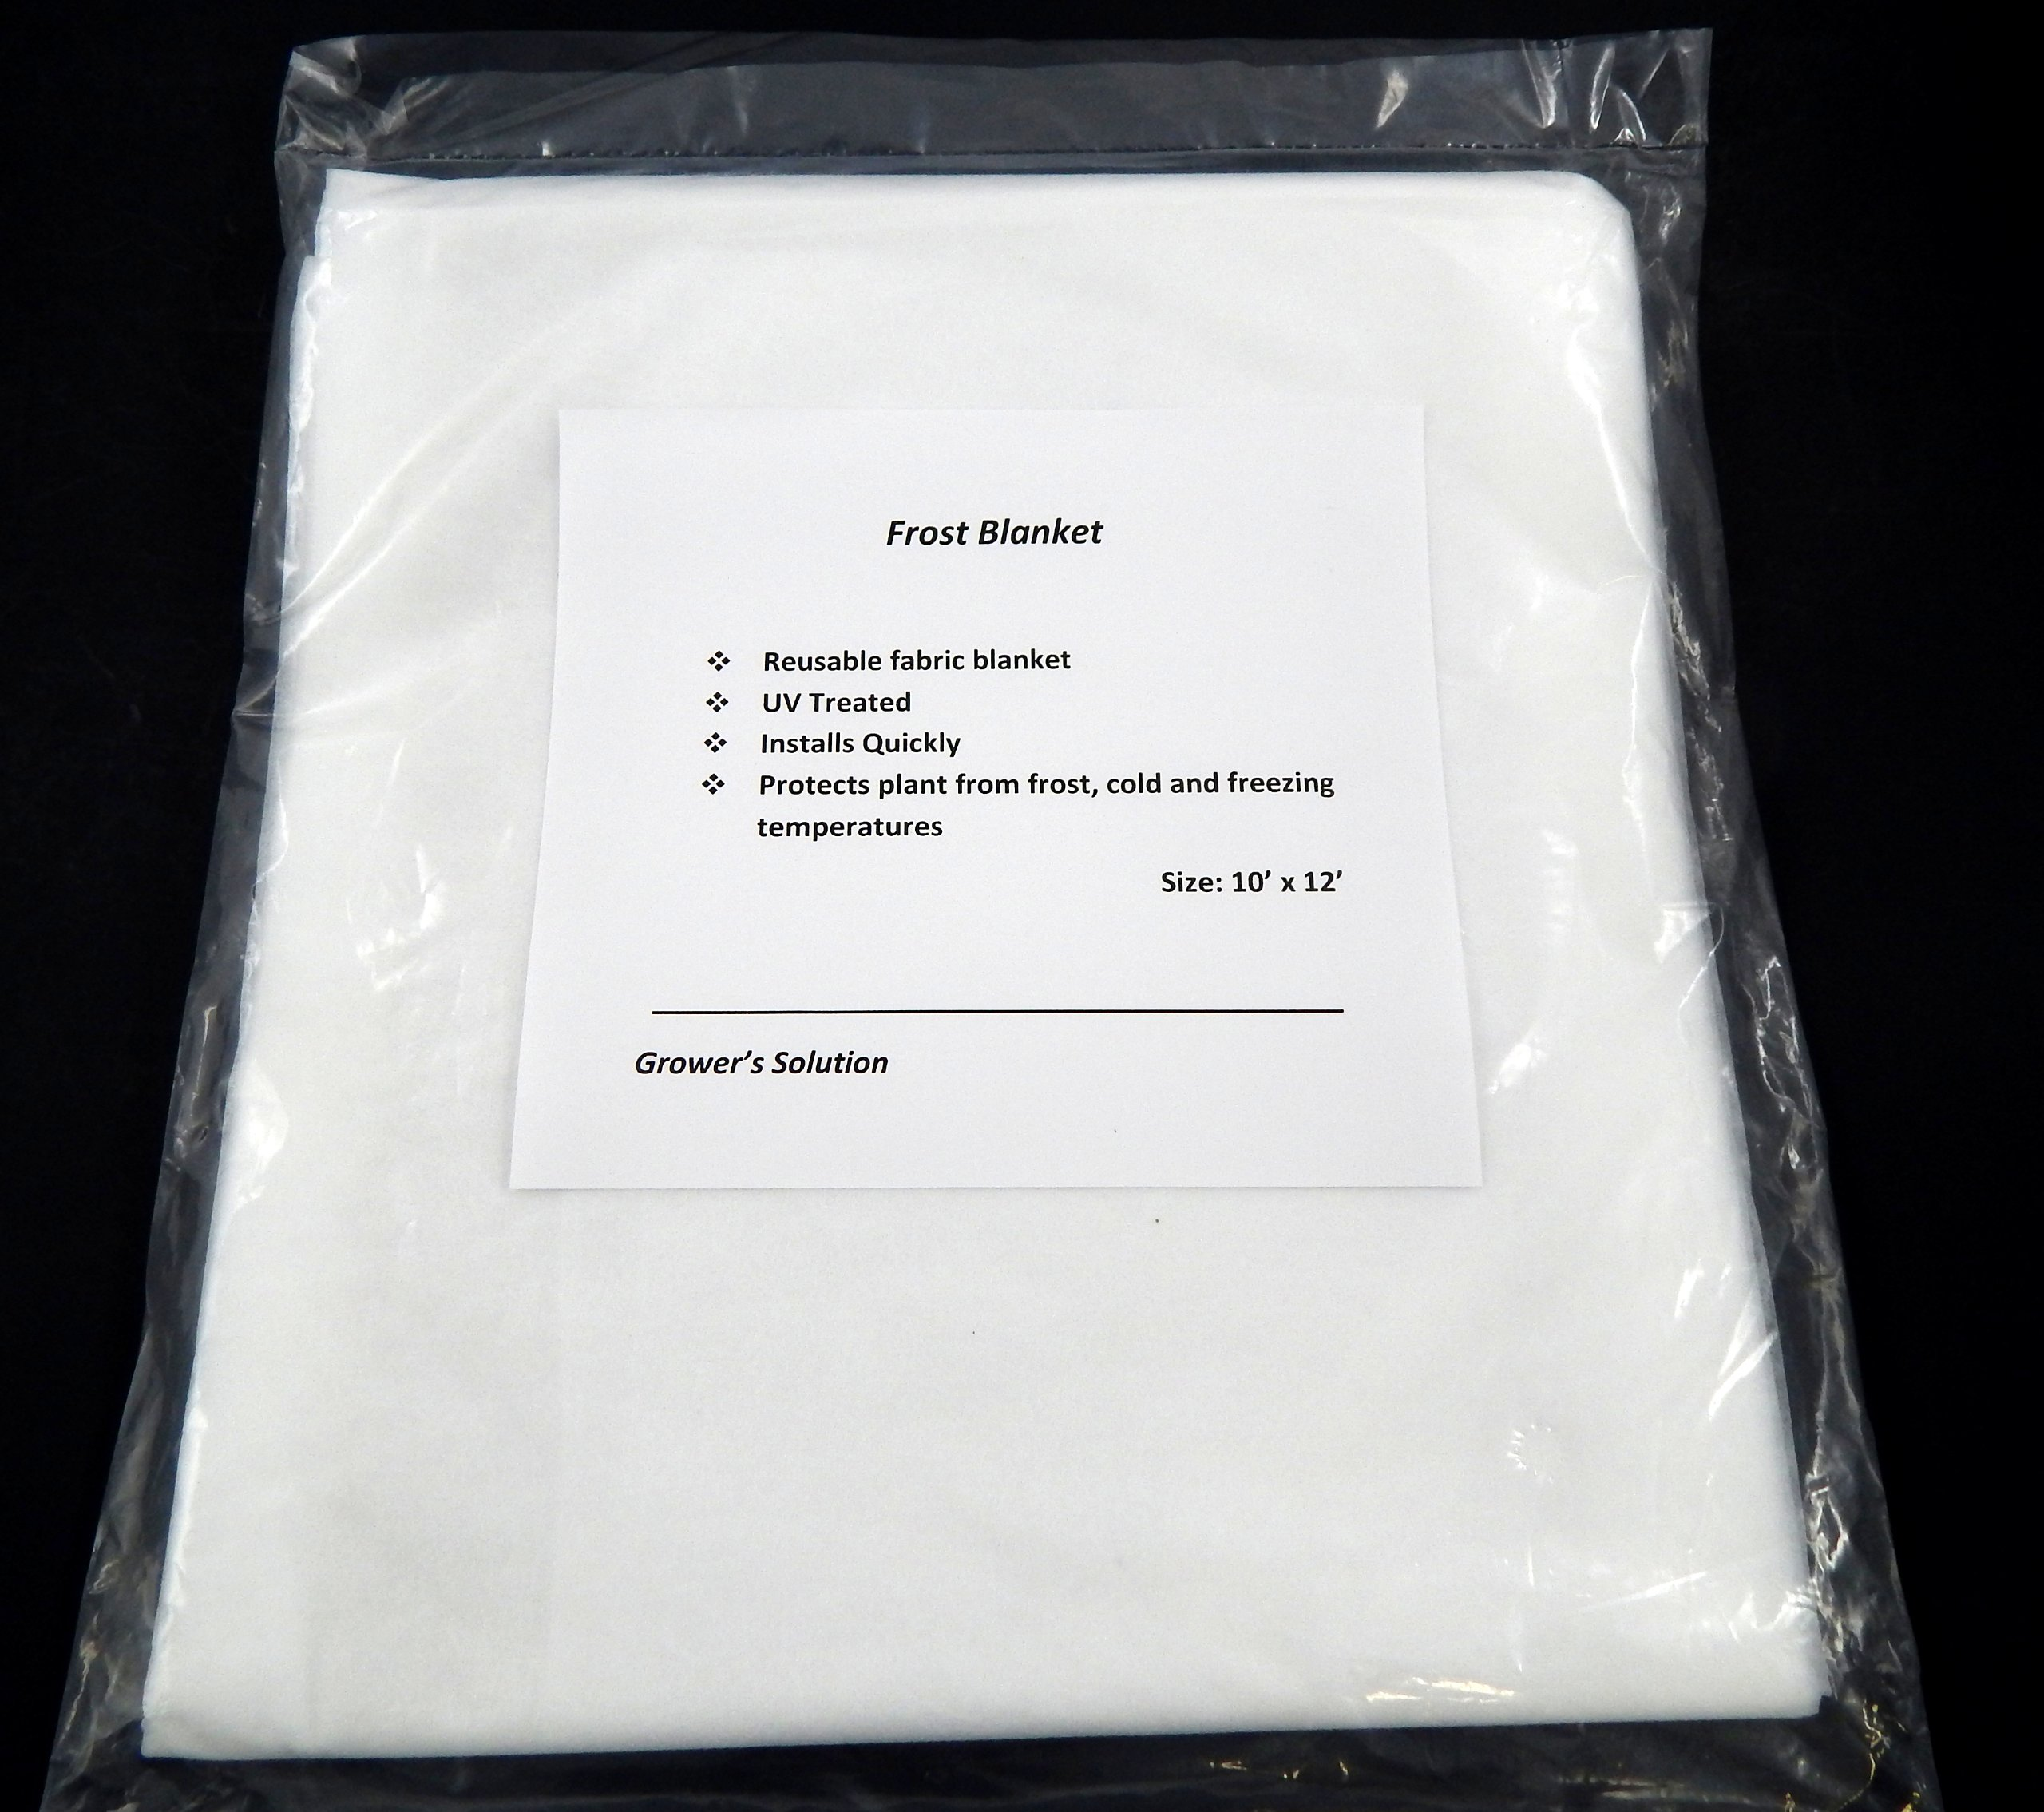 Frost Blanket for Plant Cover & Winter Protection 10' X 12' - 3 Pack by Growers Solution